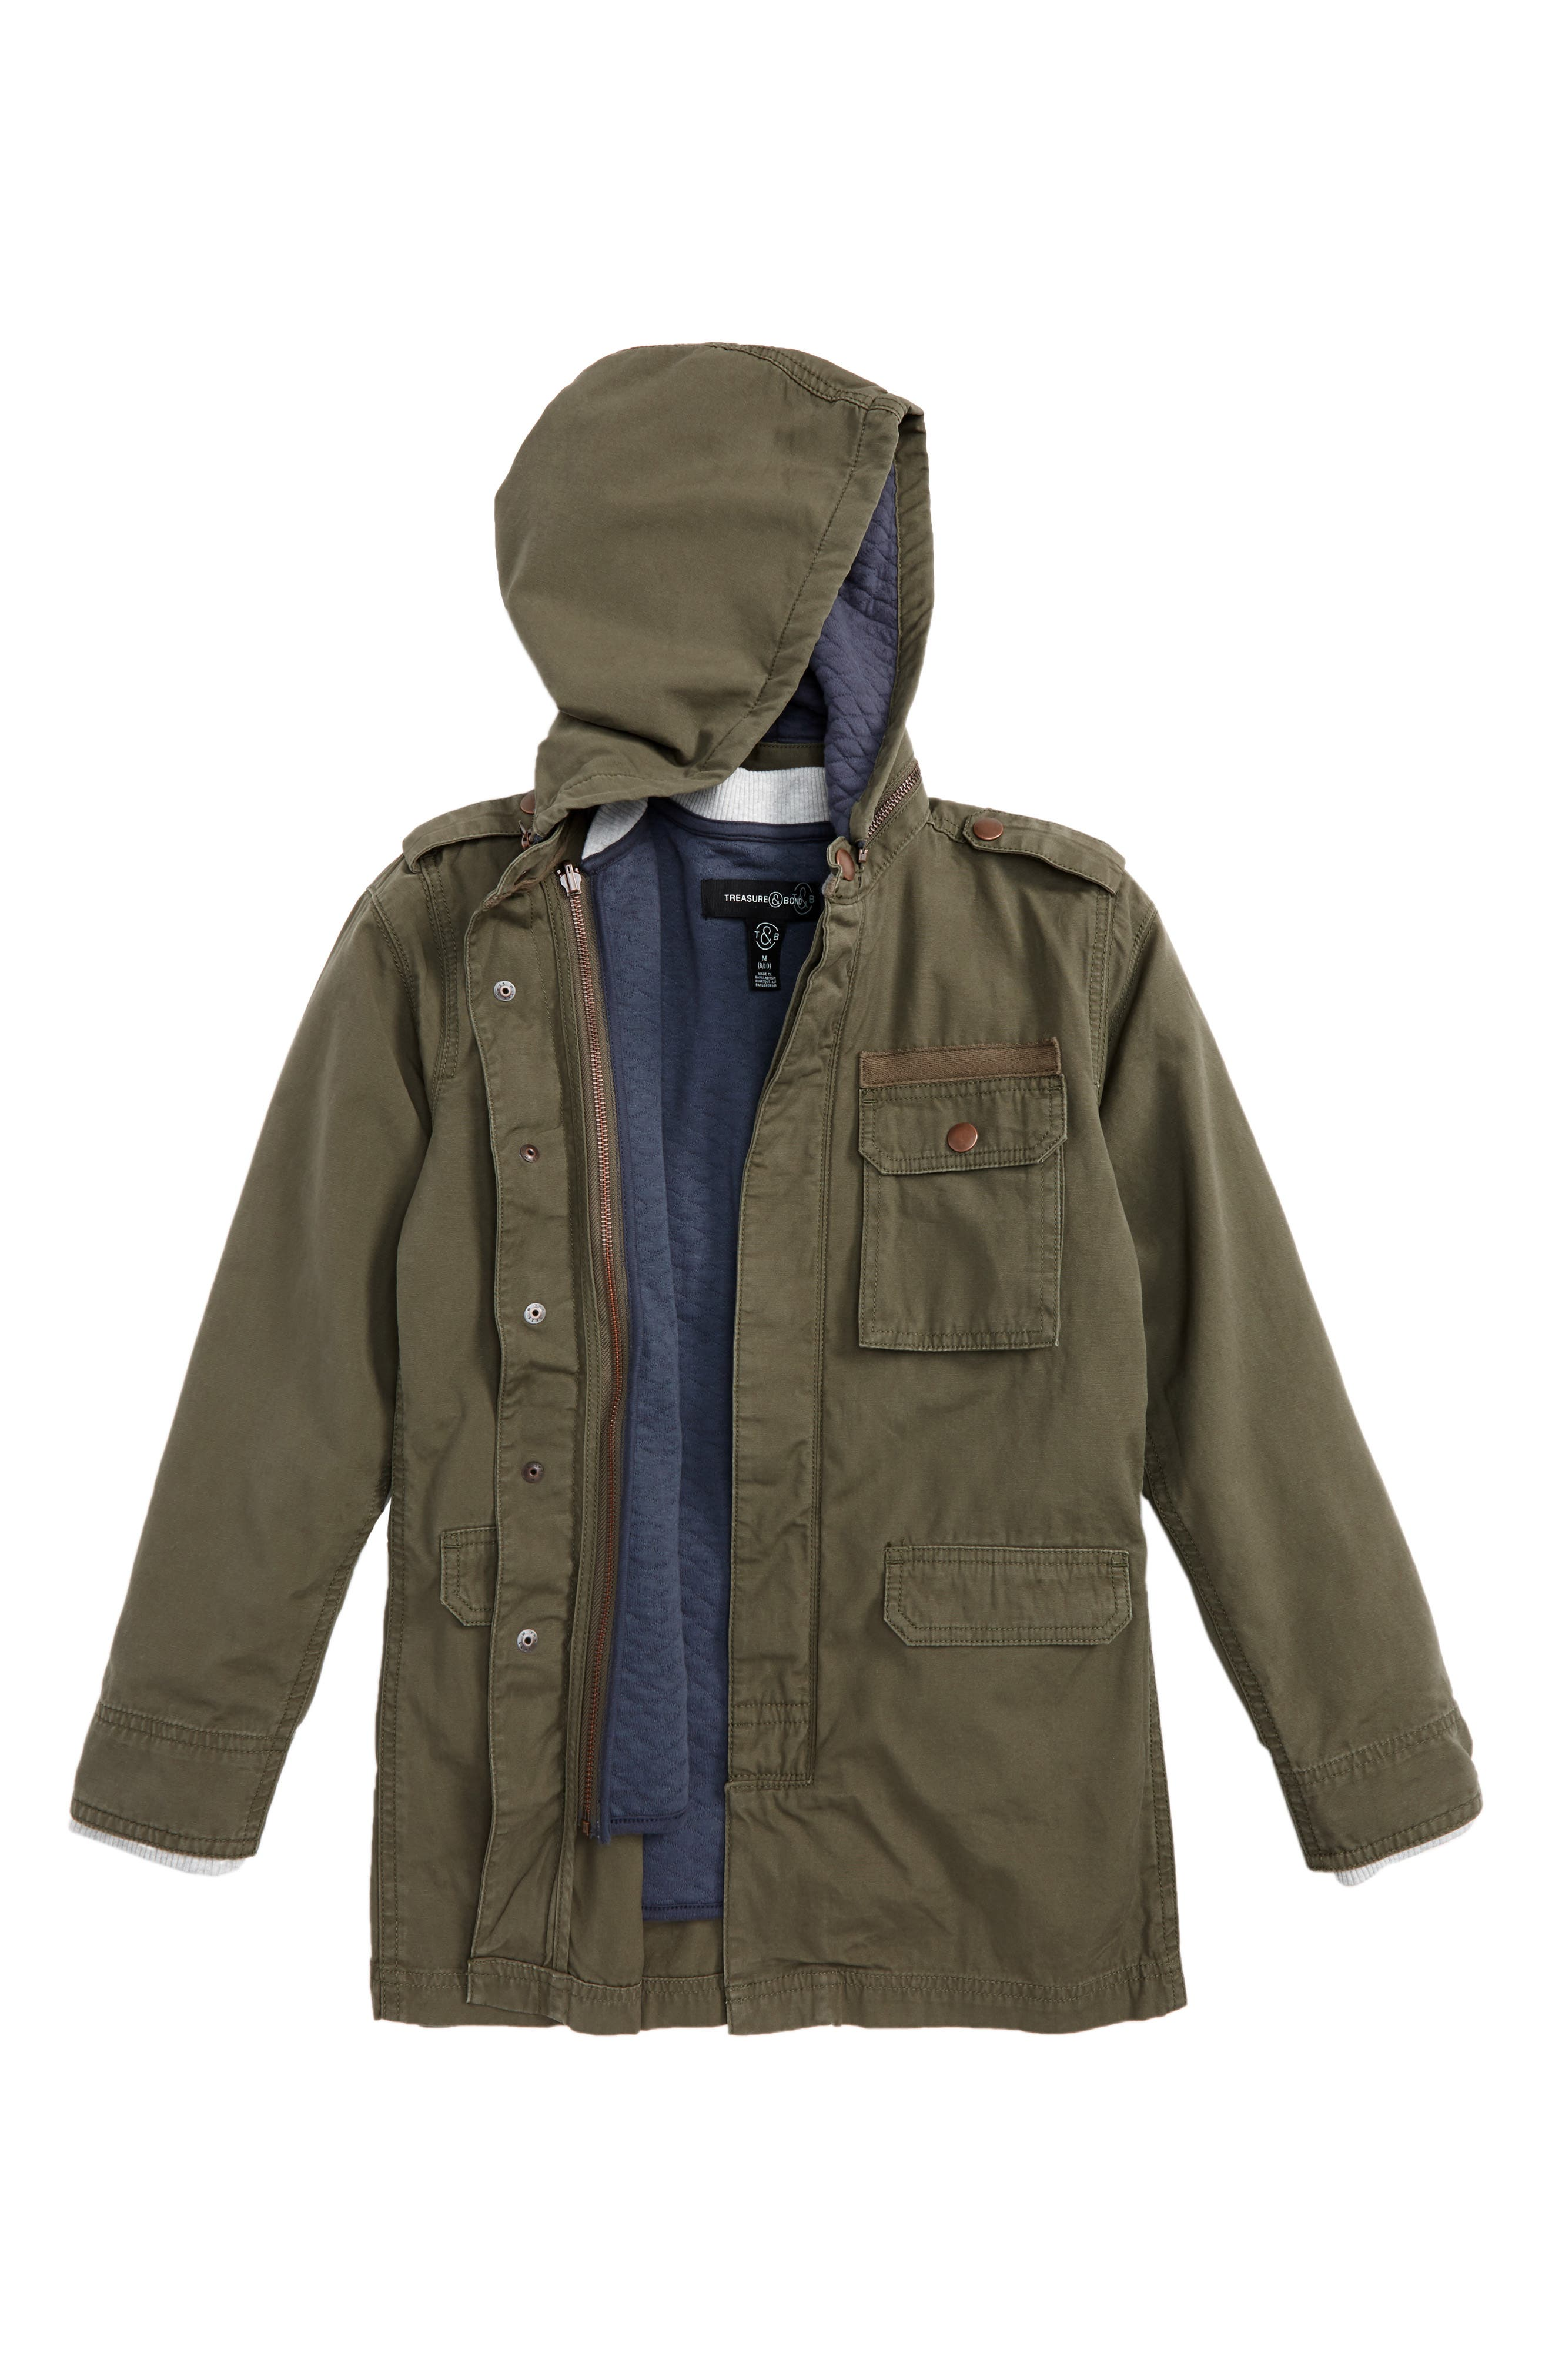 2-in-1 Hooded Military Jacket,                         Main,                         color, Olive Sarma